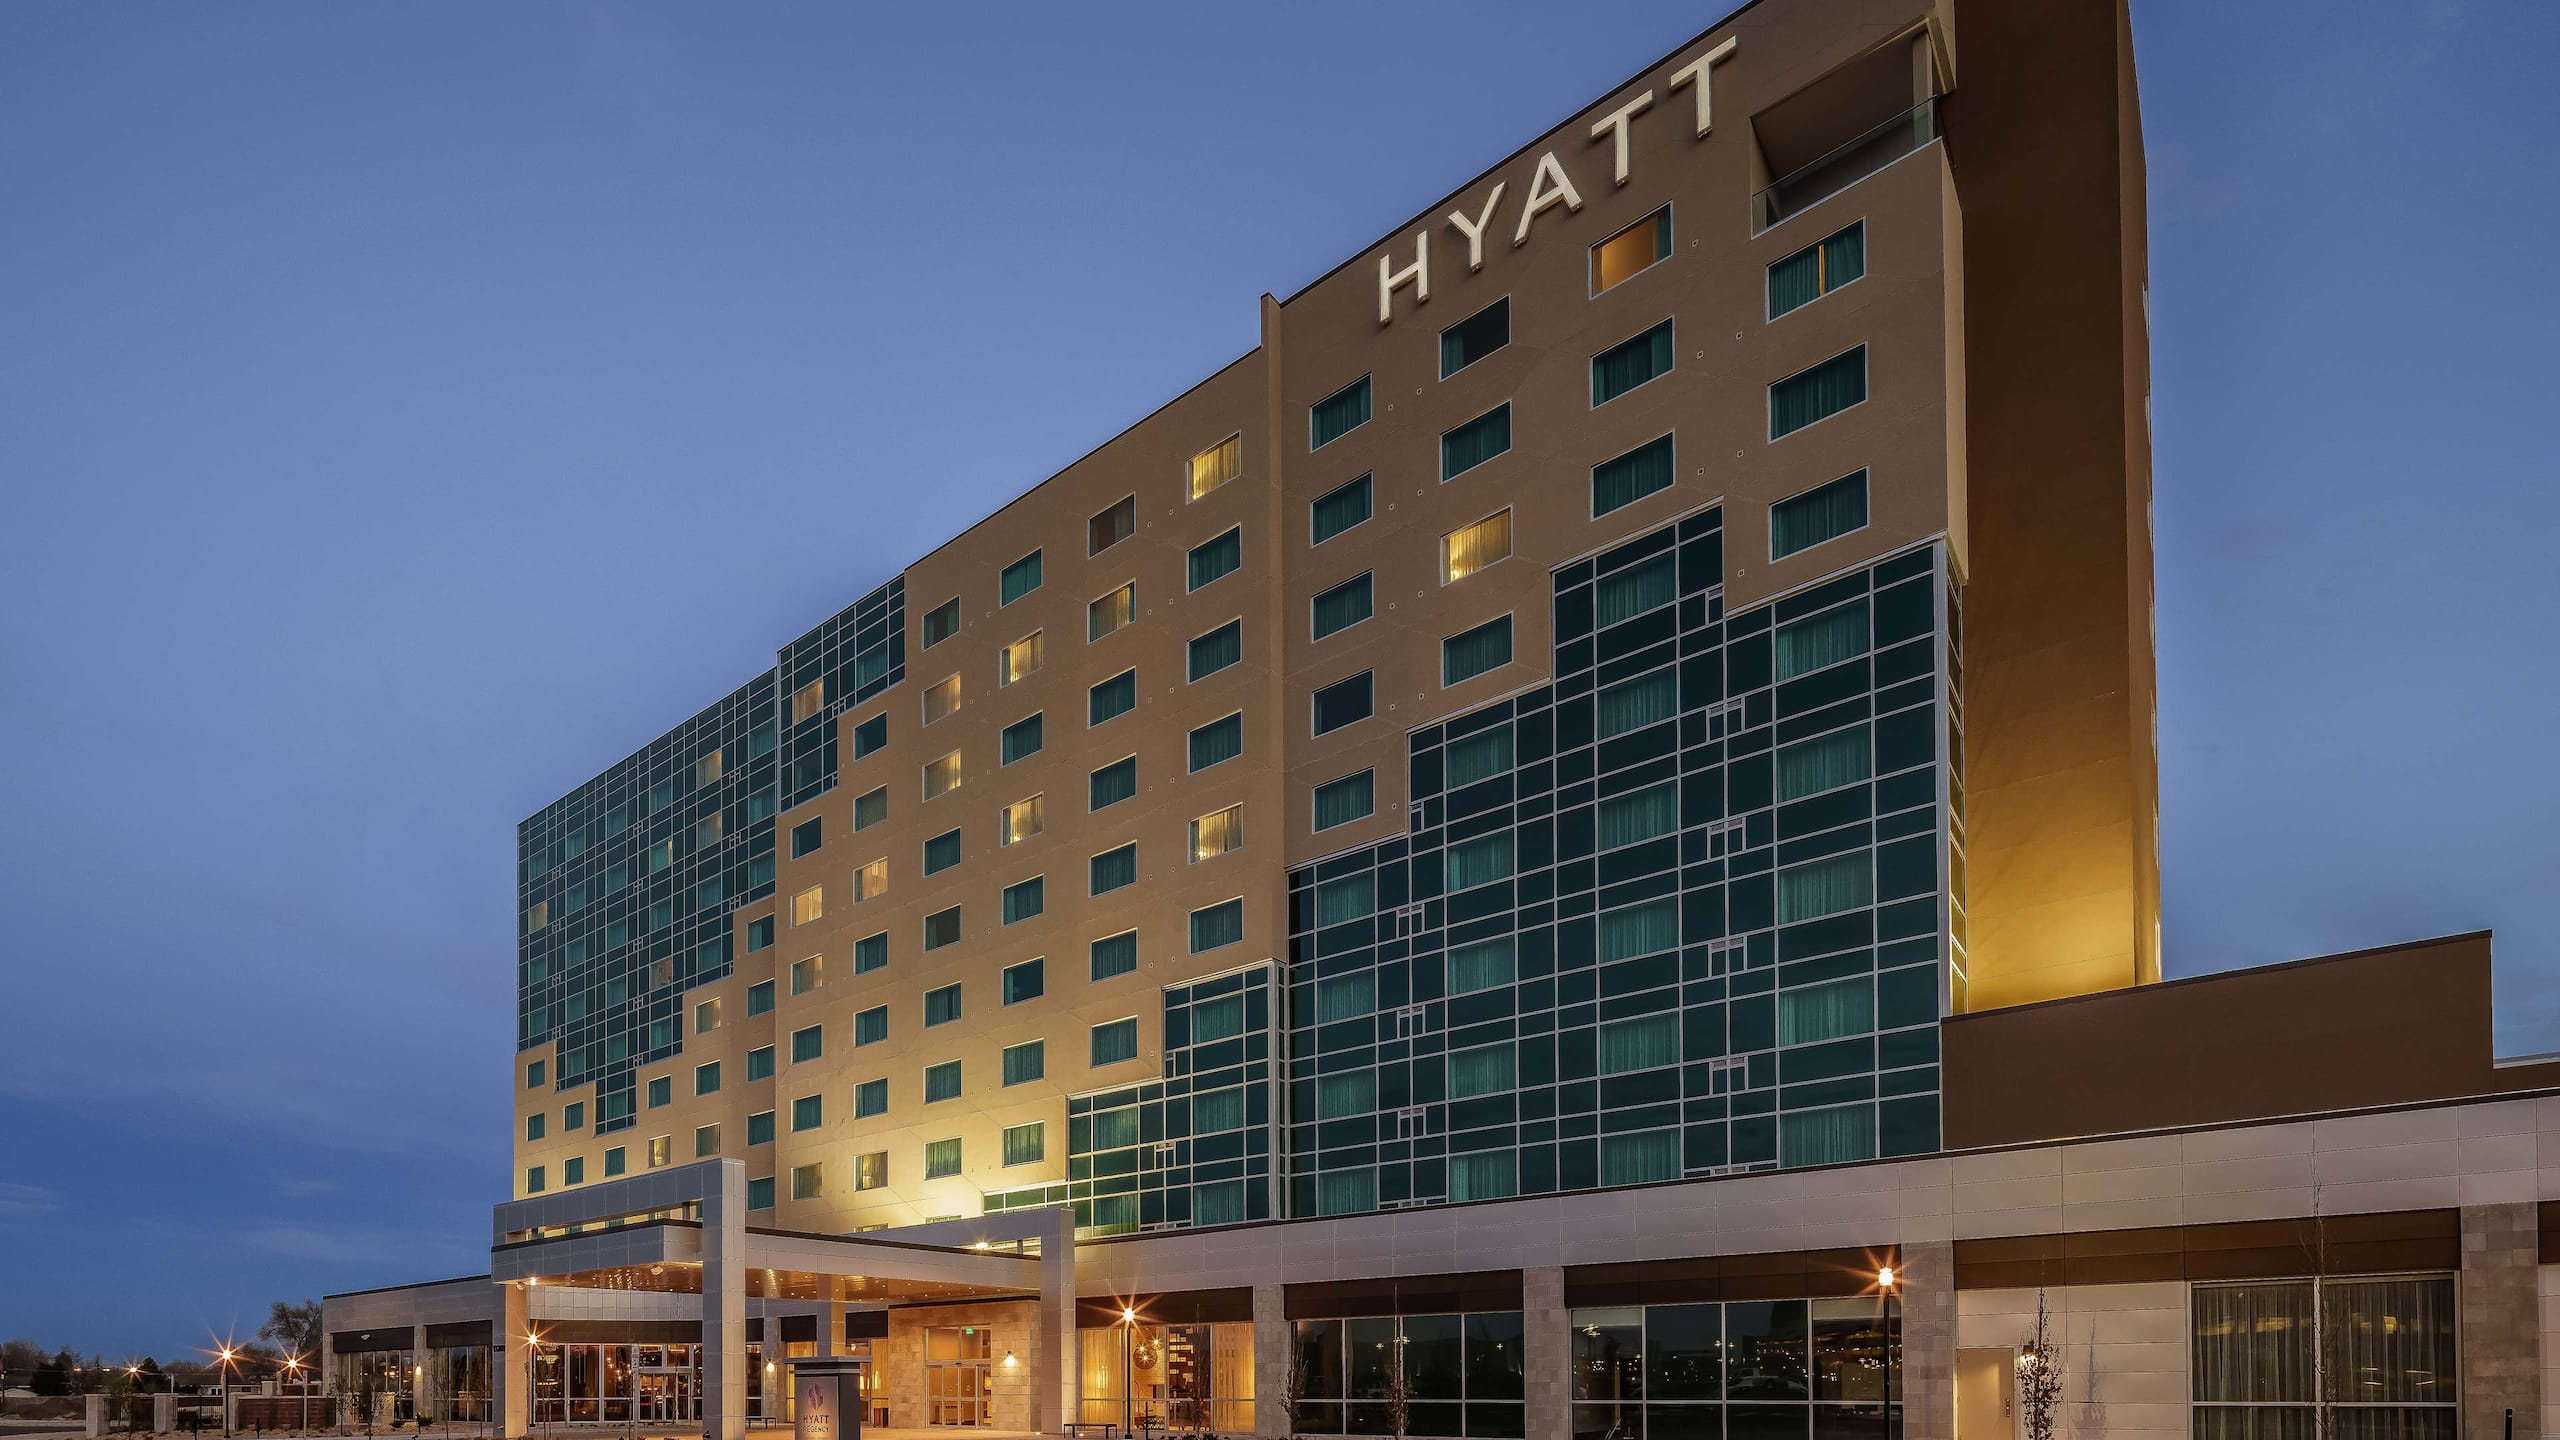 hyatt hotel locations | map of hyatt hotels and resorts worldwide